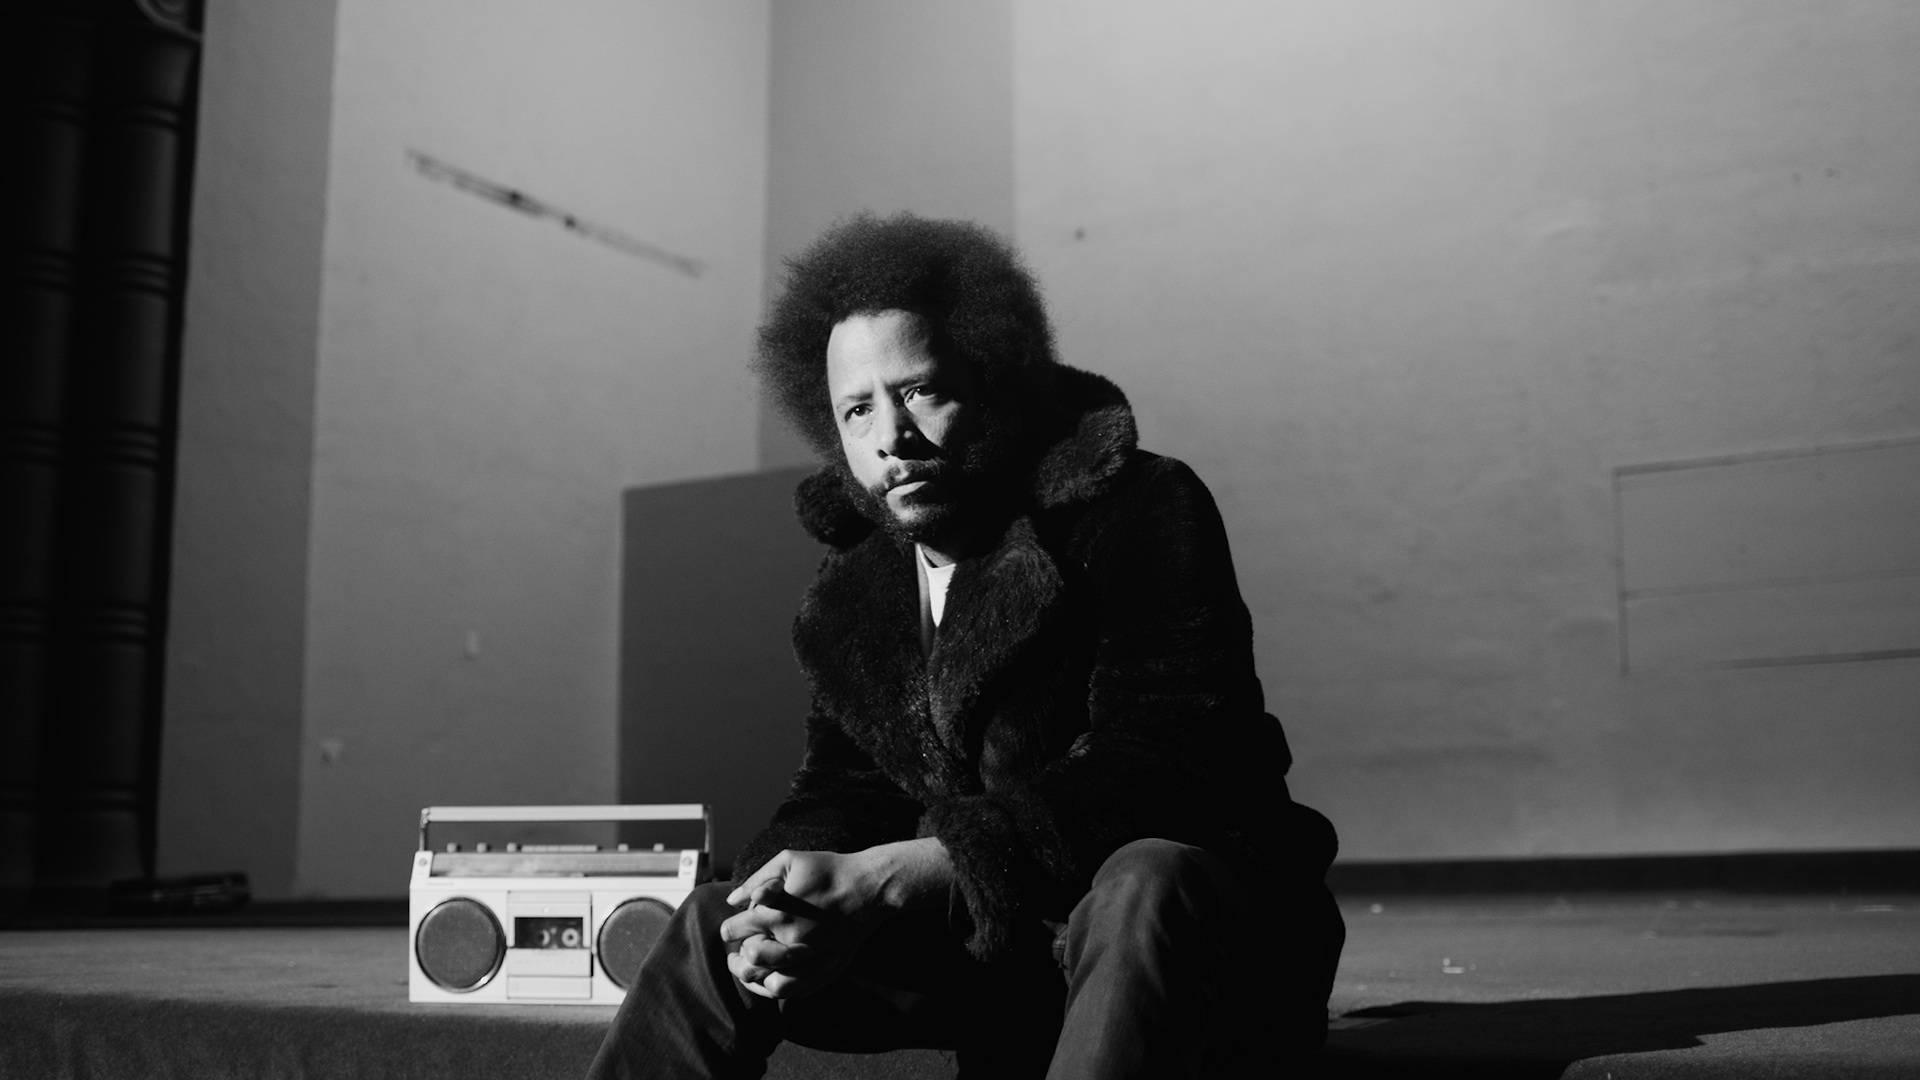 The Boombox Collection: Boots Riley